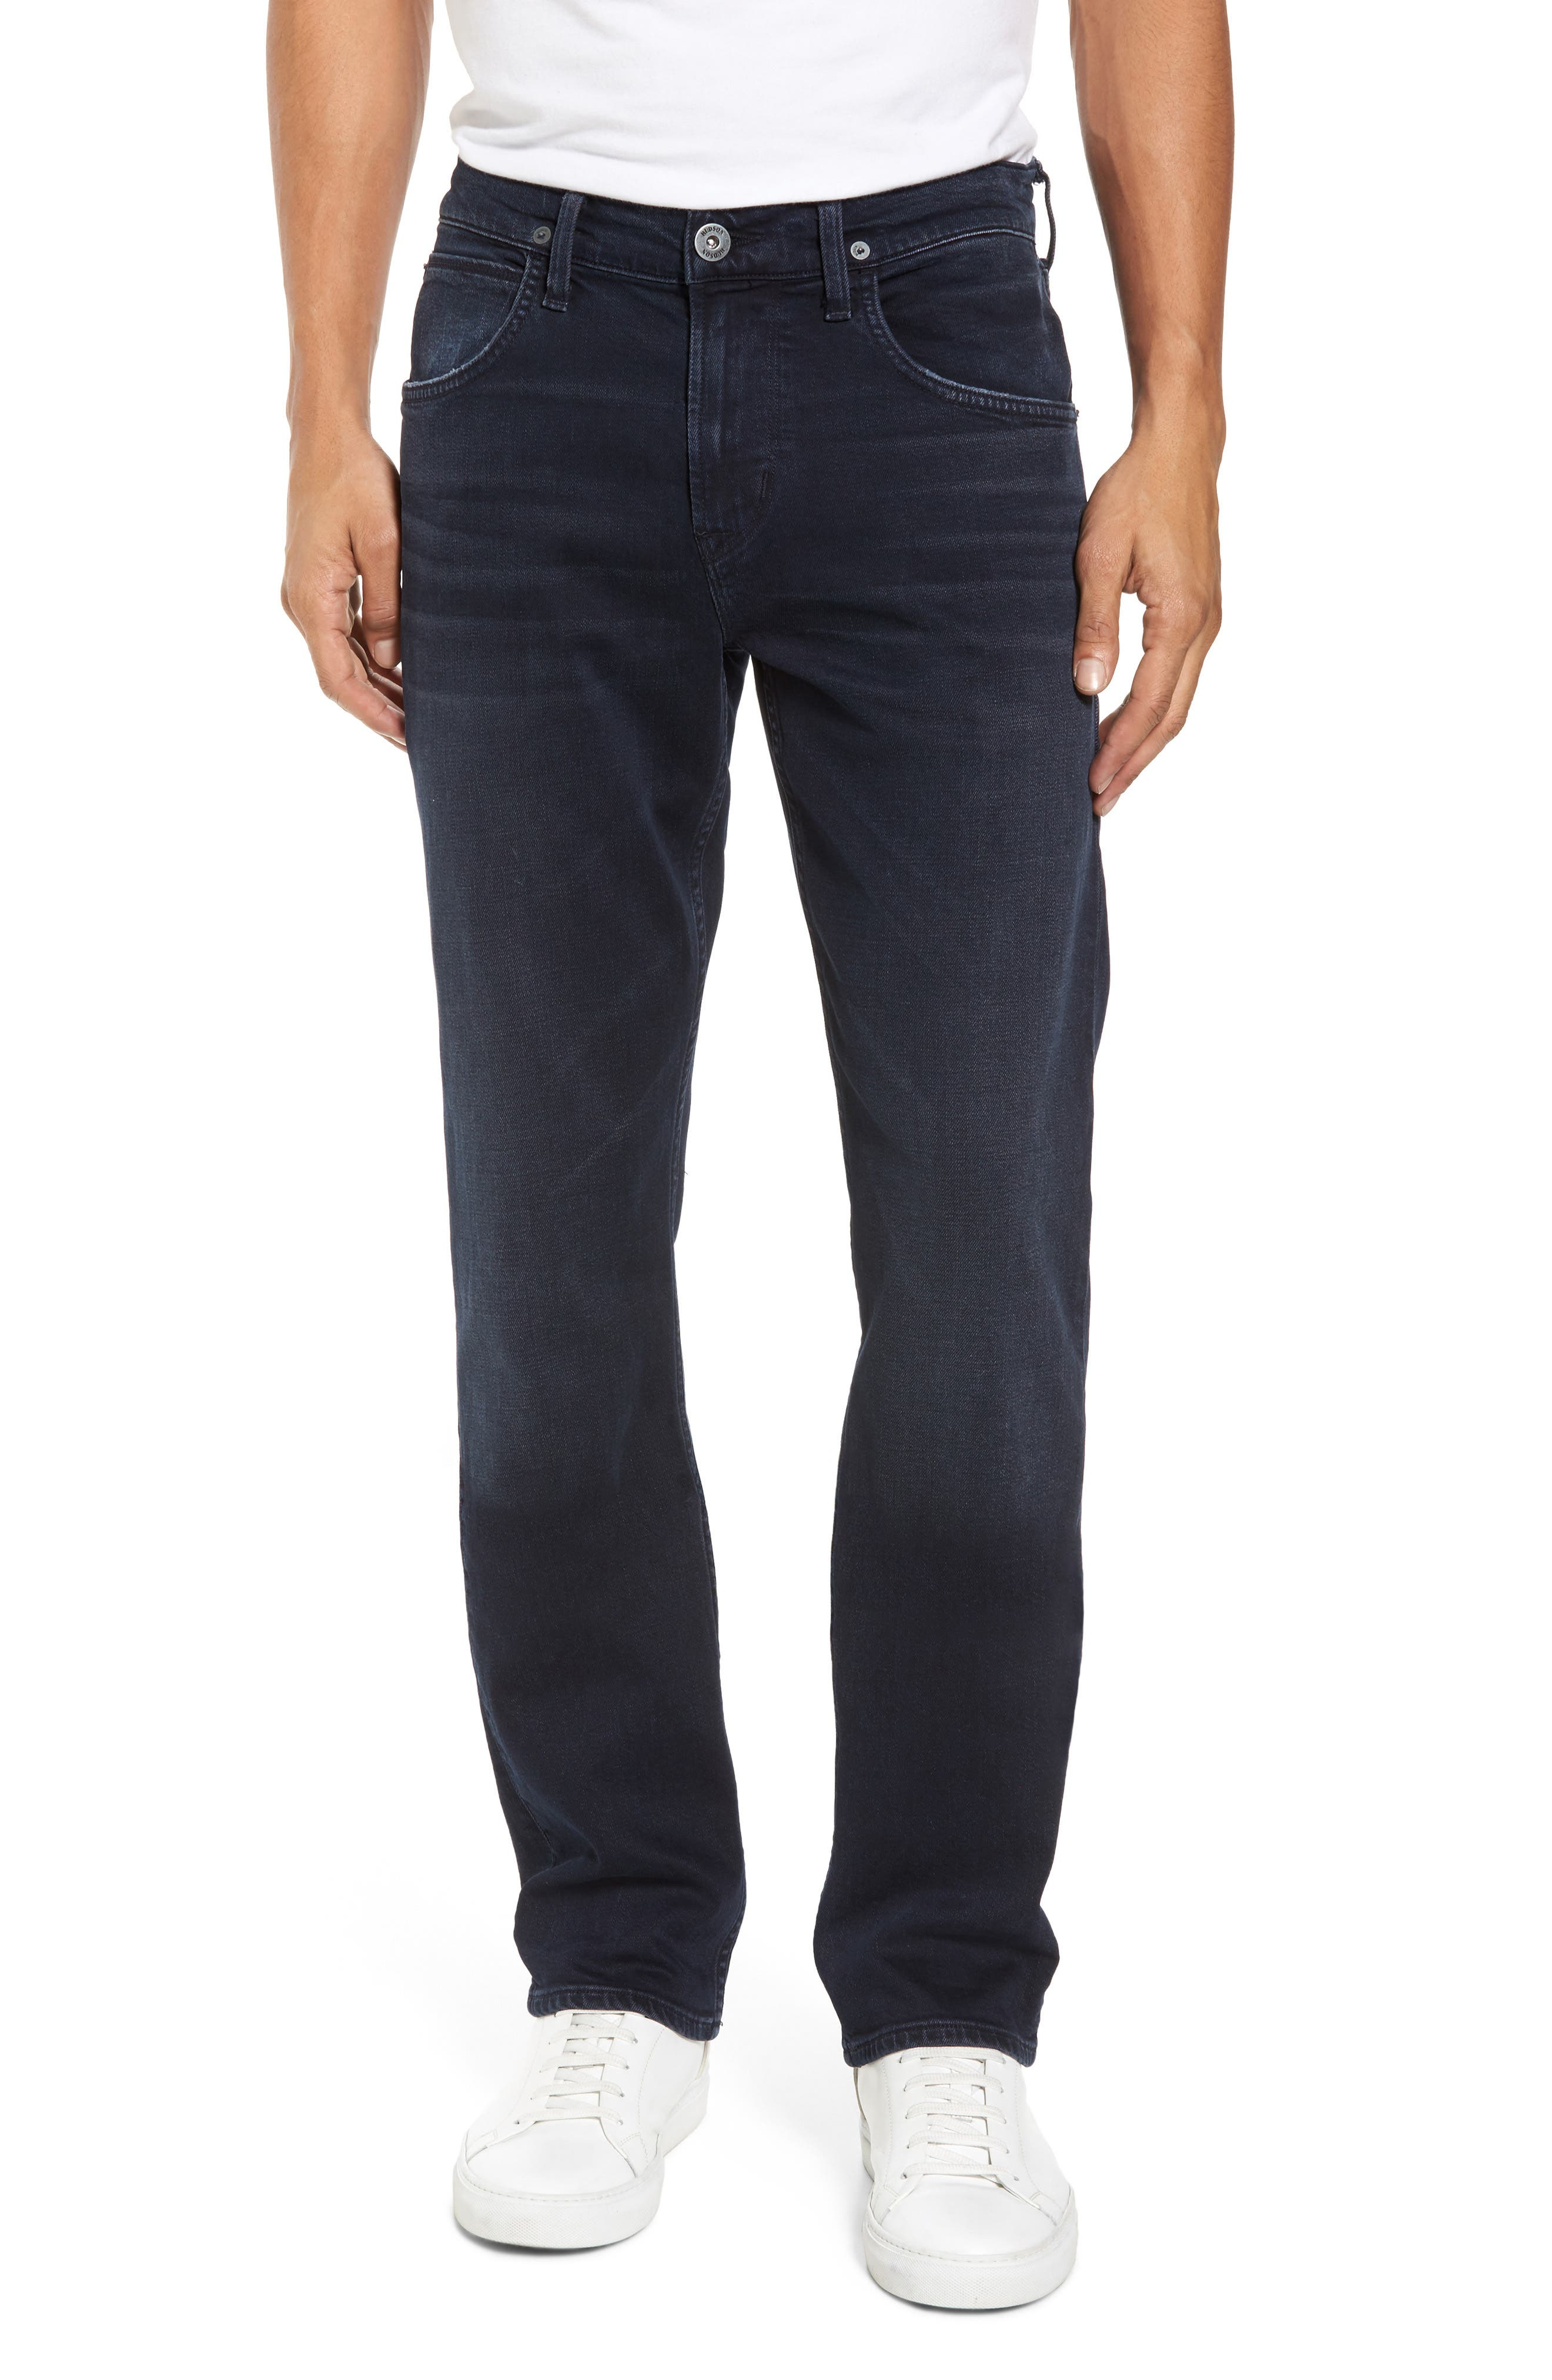 Byron Slim Straight Leg Jeans,                             Main thumbnail 1, color,                             404